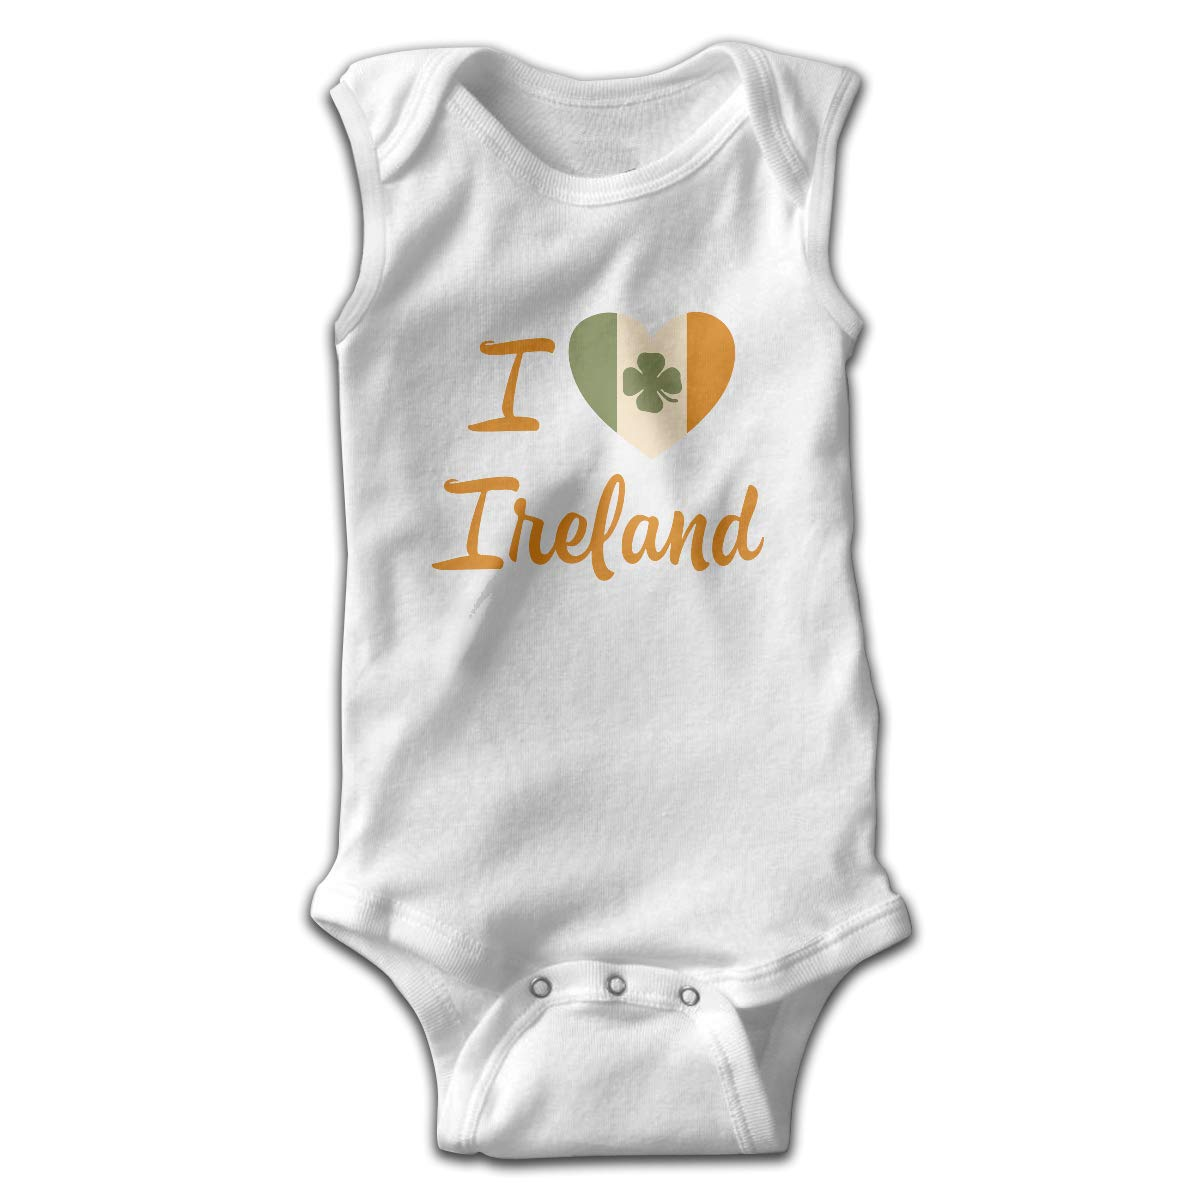 I Love Ireland Printed Infant Baby Boy Girl Sleeveless Bodysuits Coverall Jumpsuit